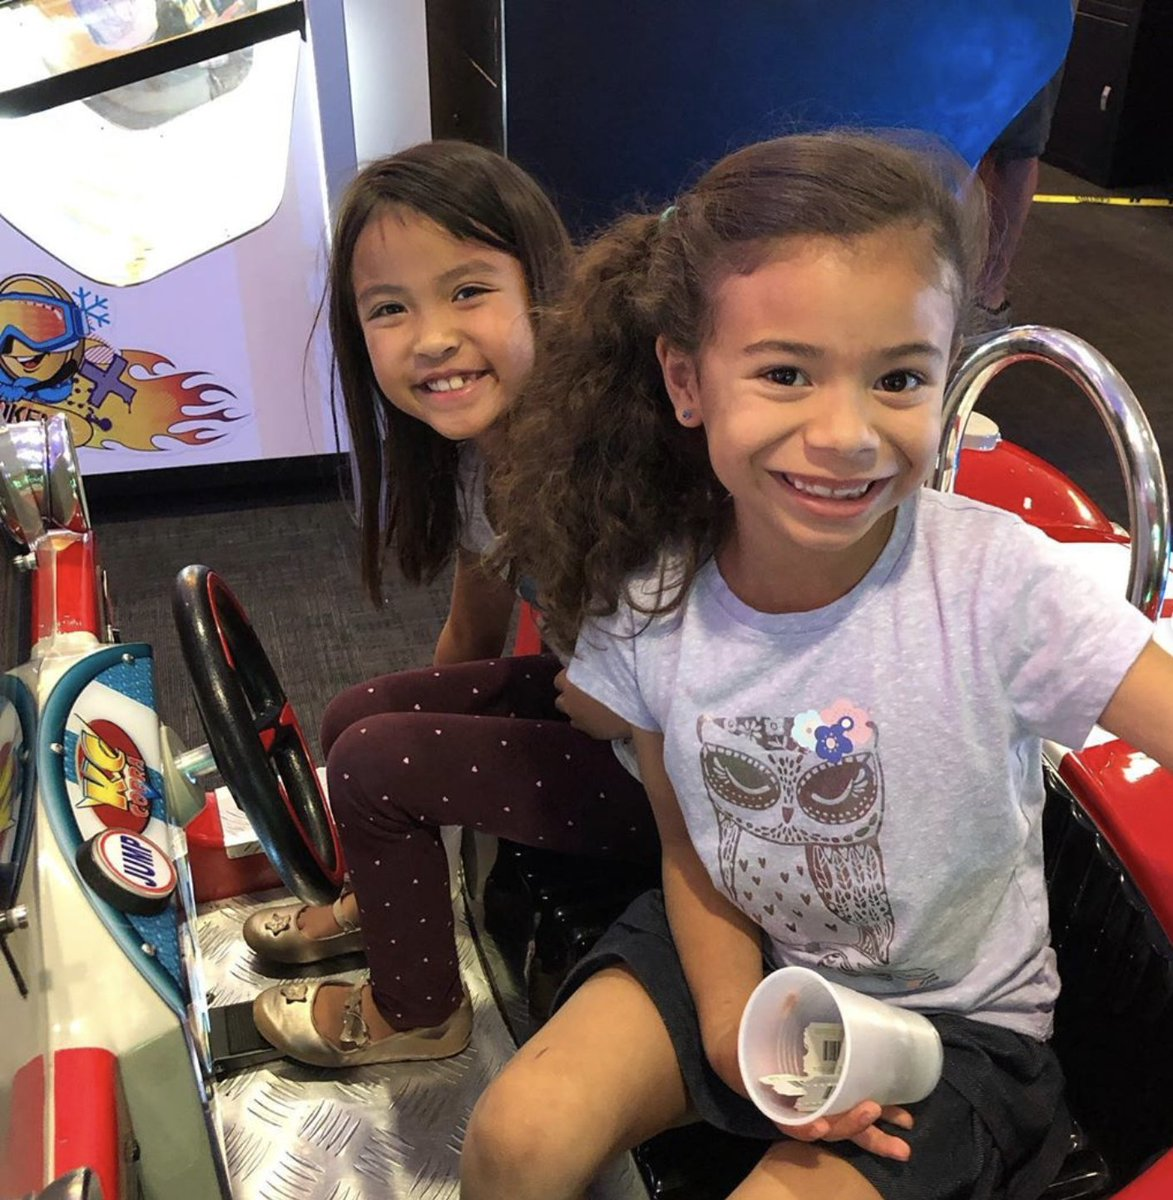 Ready, set, win! Grab your bestie and explore all the fun our game room has to offer!   Visit https://t.co/BeqFavT7yR to find your nearest Peter Piper Pizza.  📸 by: Trihna K. https://t.co/QgHtSSXmuw